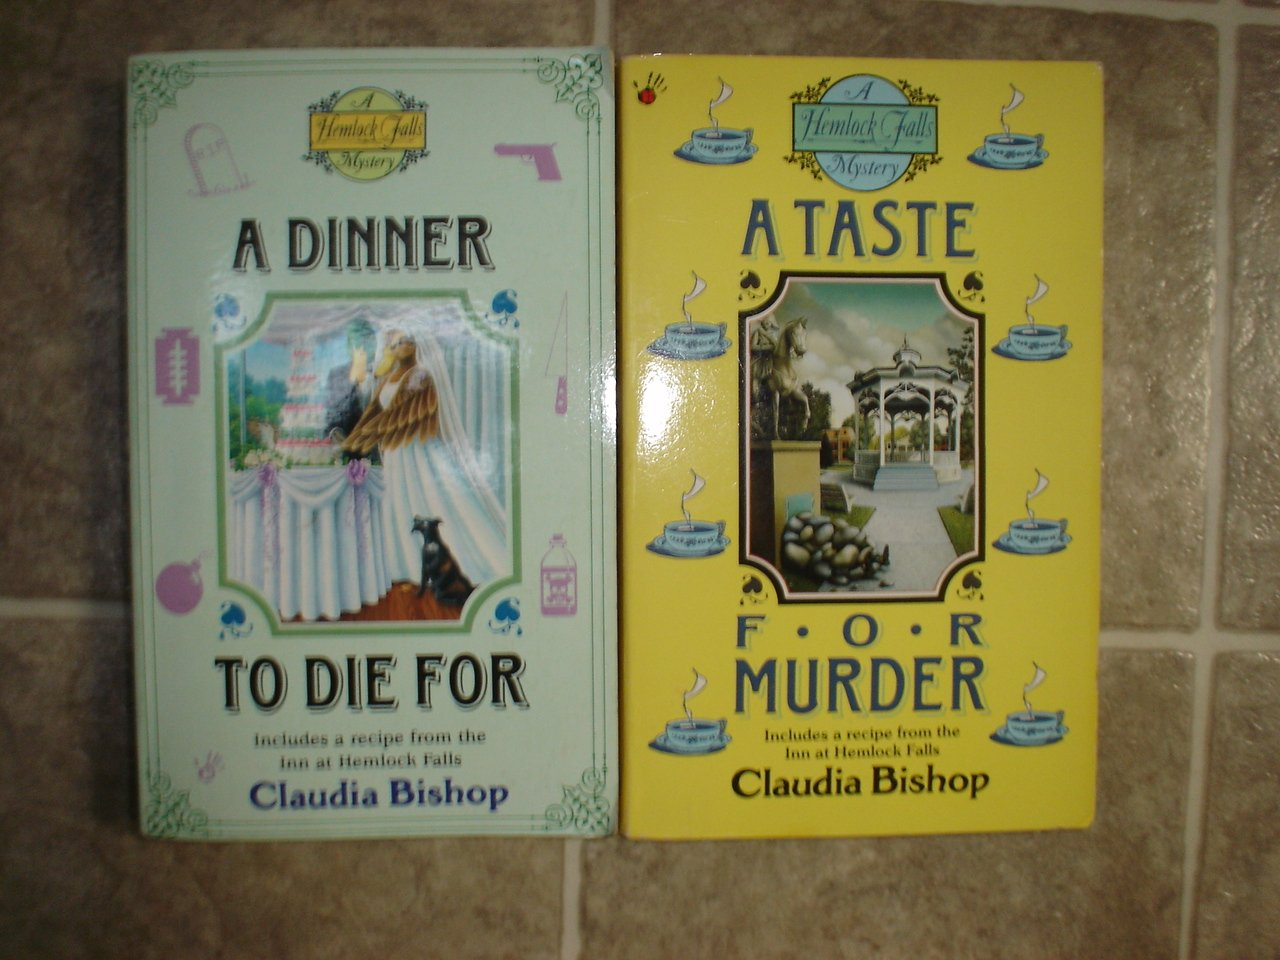 Claudia Bishop lot of 2 pb cozy mystery books Hemlock Falls Berkley Prime Crime